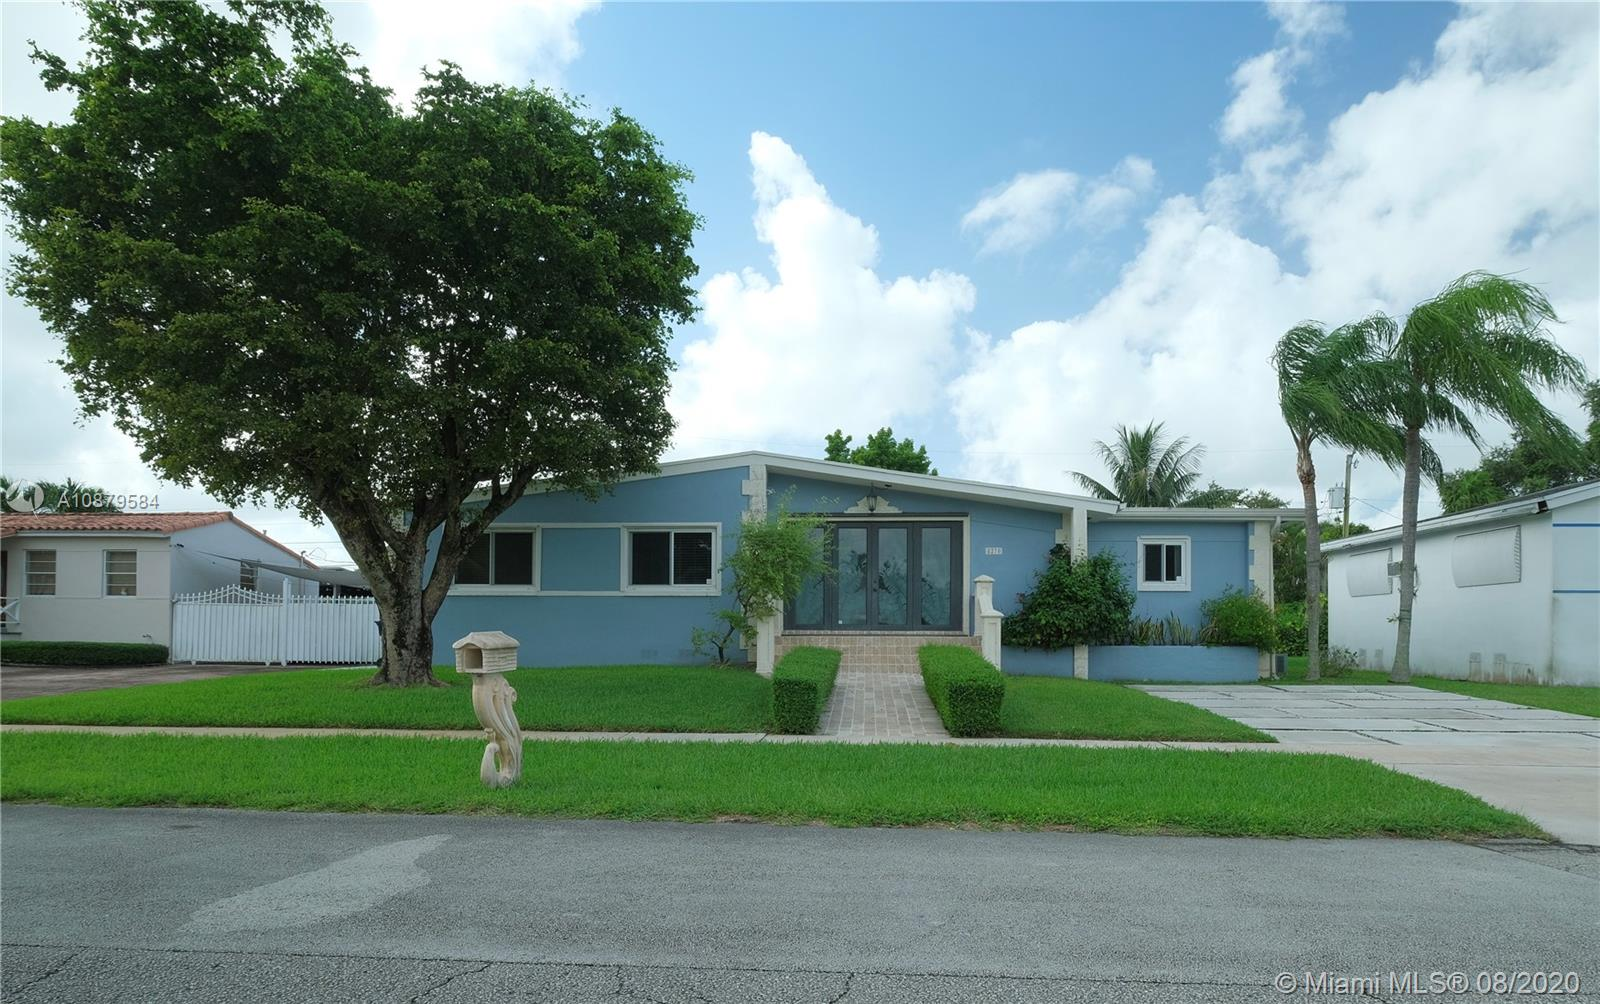 8270 SW 30th St  For Sale A10879584, FL